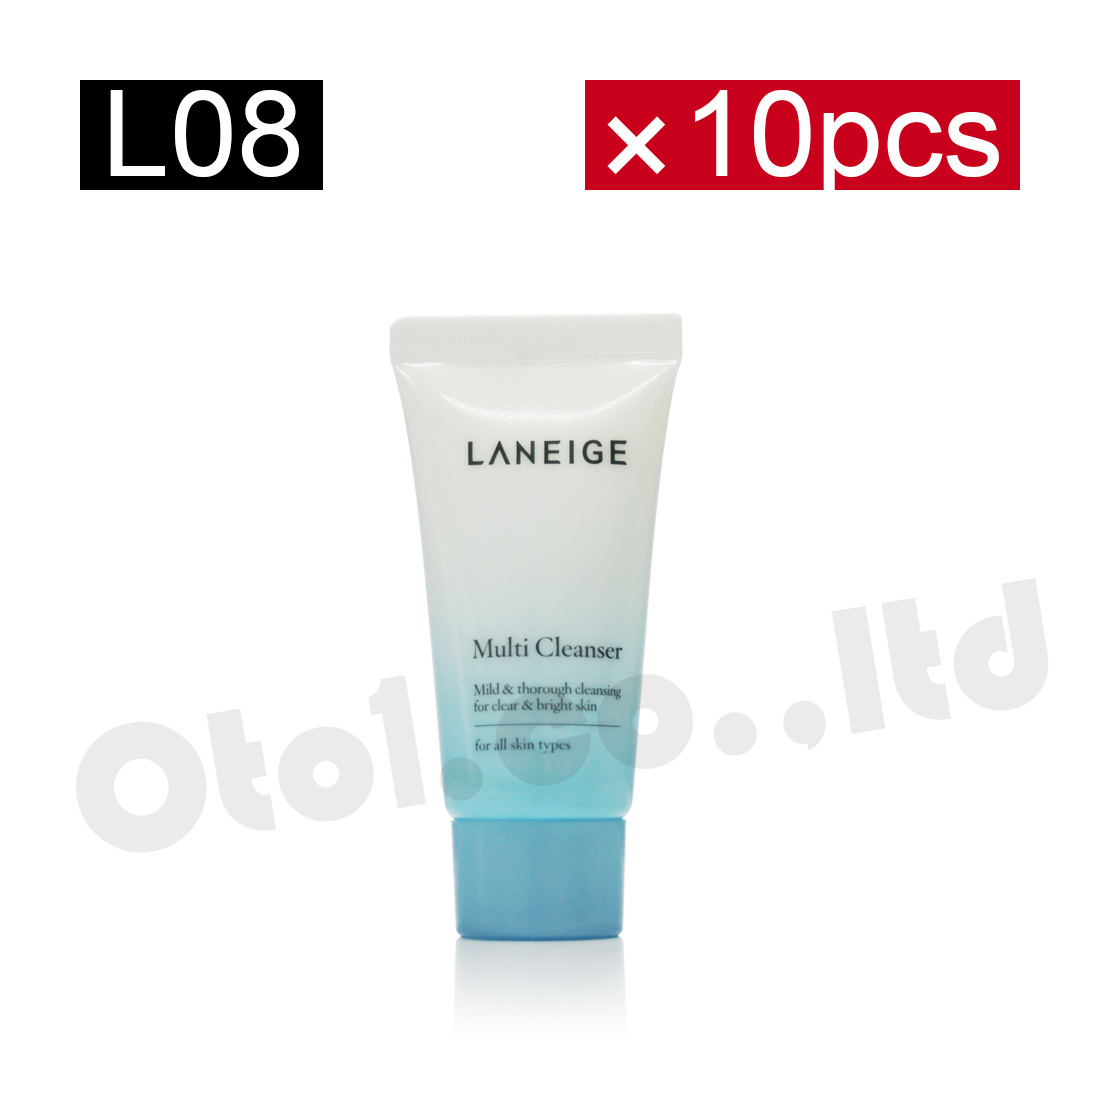 Qoo10 Multi Cleanser Cosmetics Laneige Fit To Viewer Prev Next